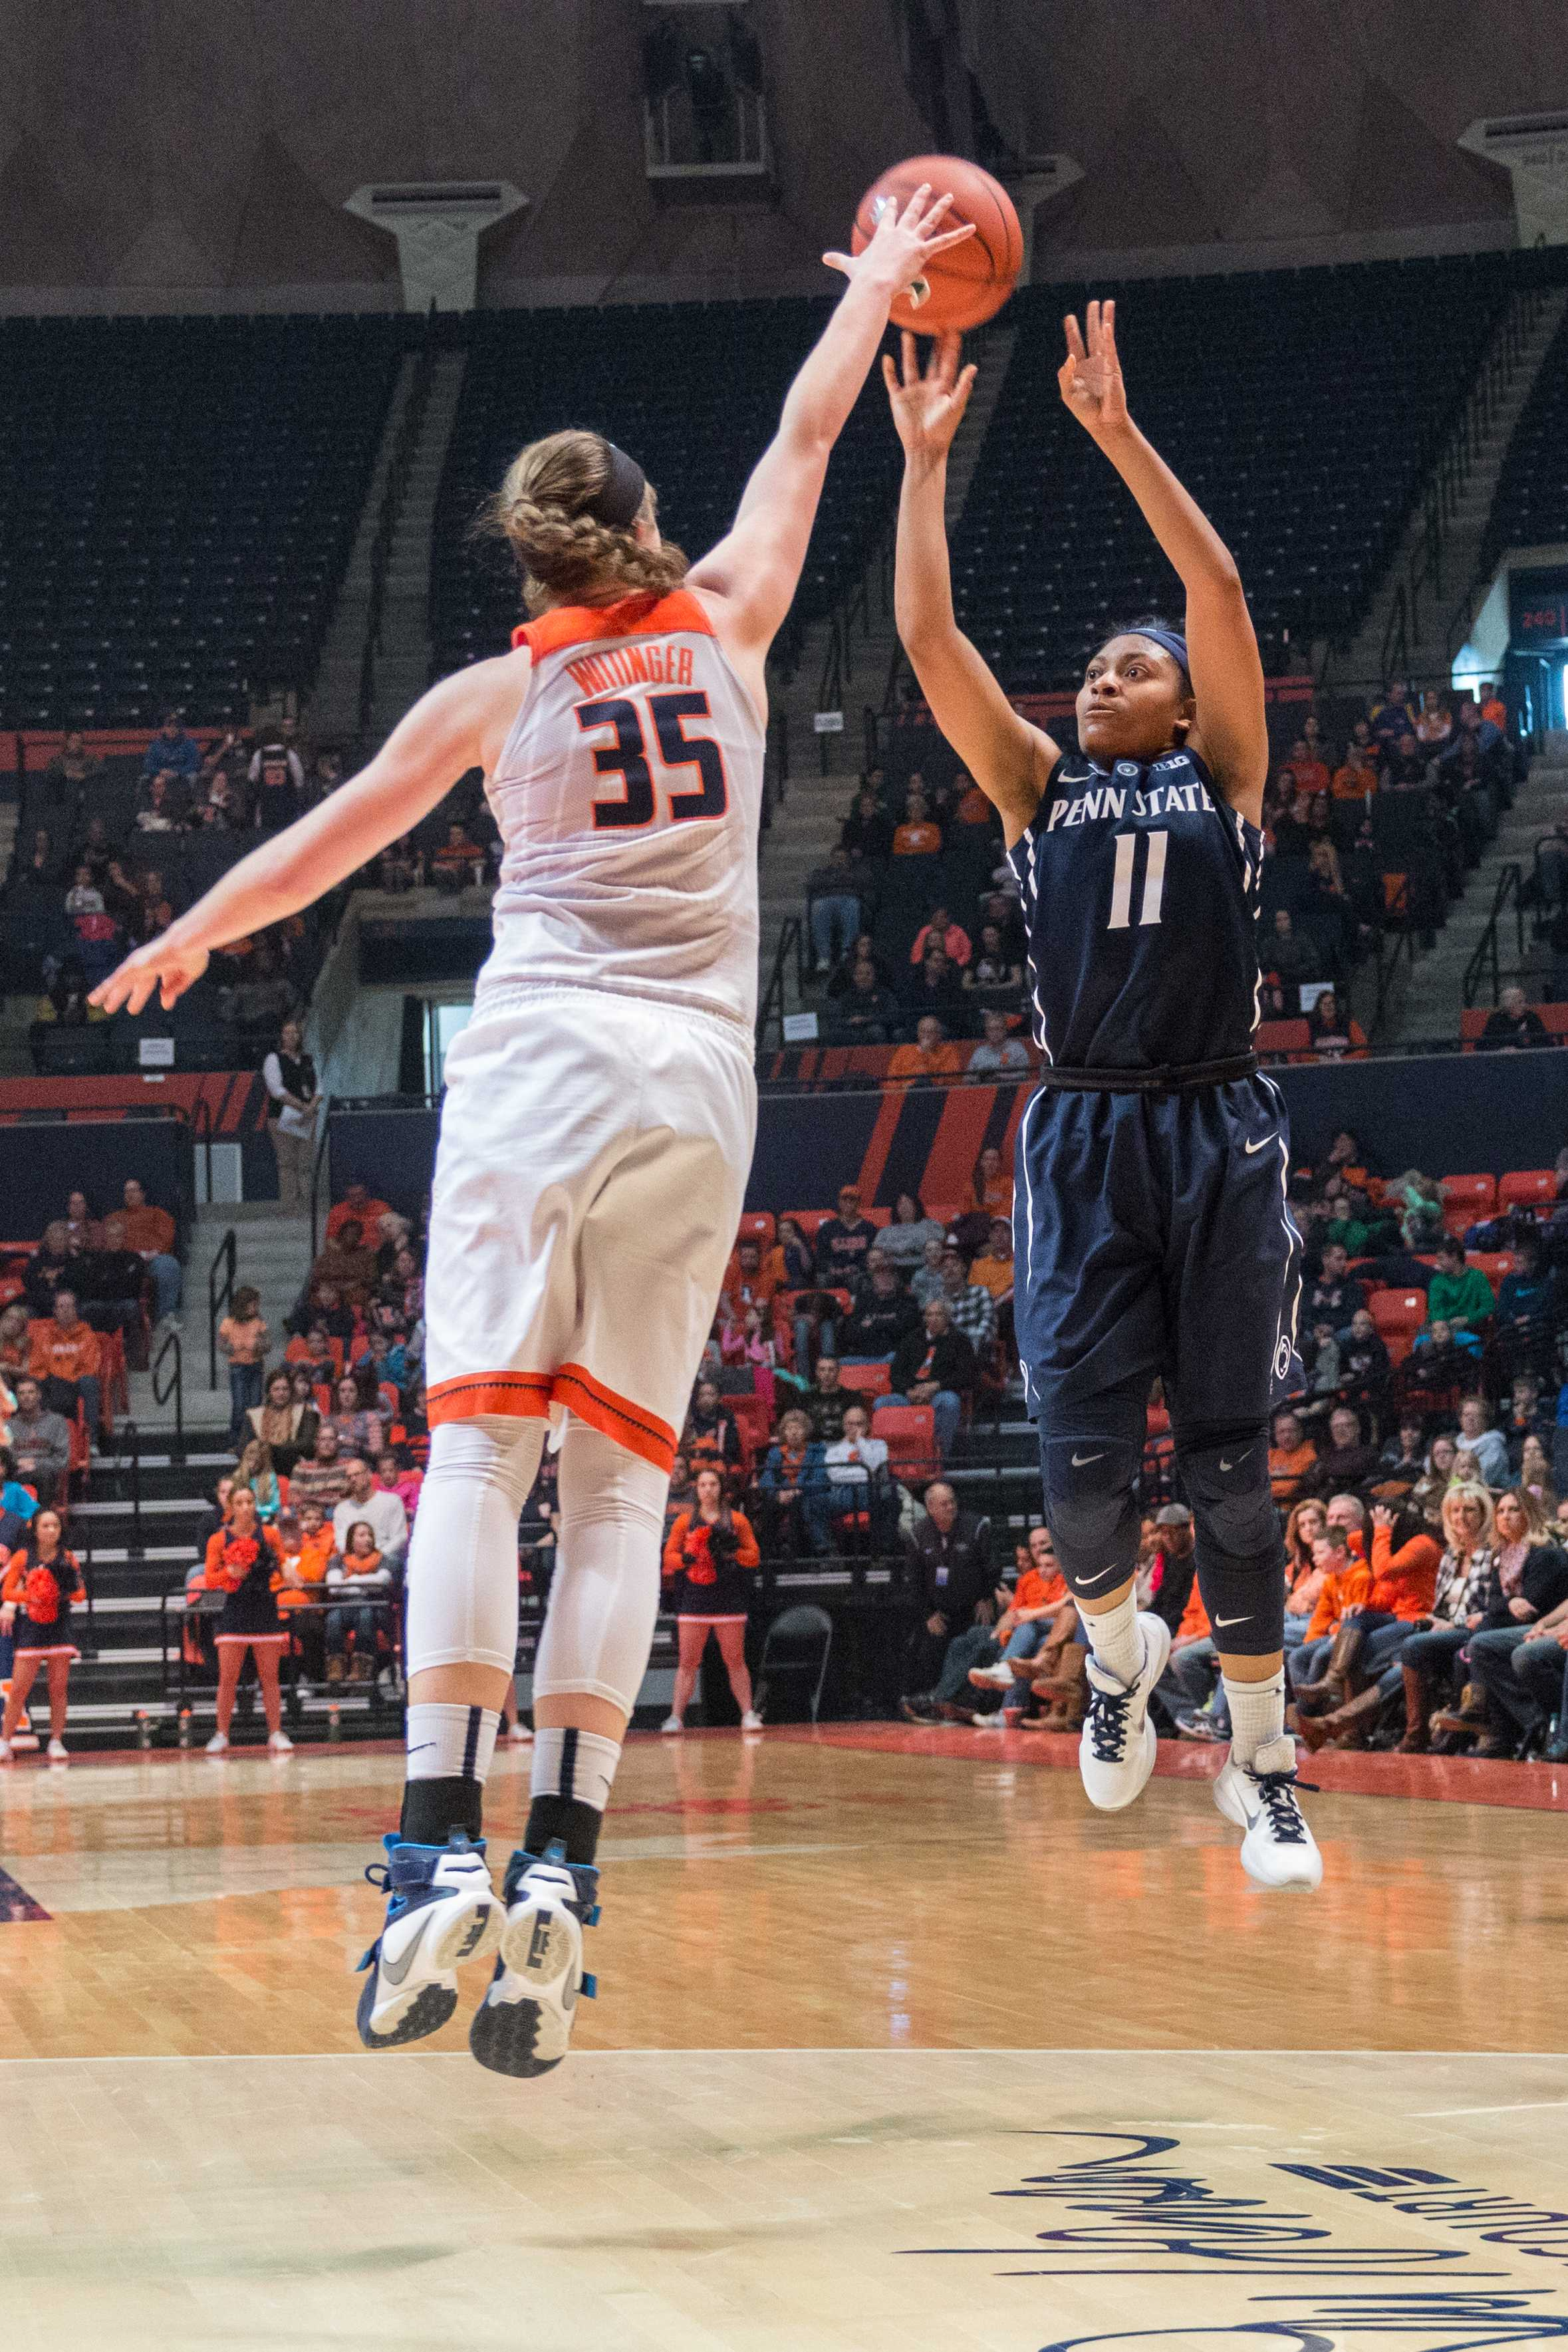 Penn State's Teniya Page shoots a 3-pointer over Illinois' Alex Wittinger. Teniya scored 17 points in the second half to help the Nittany Lions defeat the Illini 65-56 on Saturday, Jan. 23 at State Farm Center.